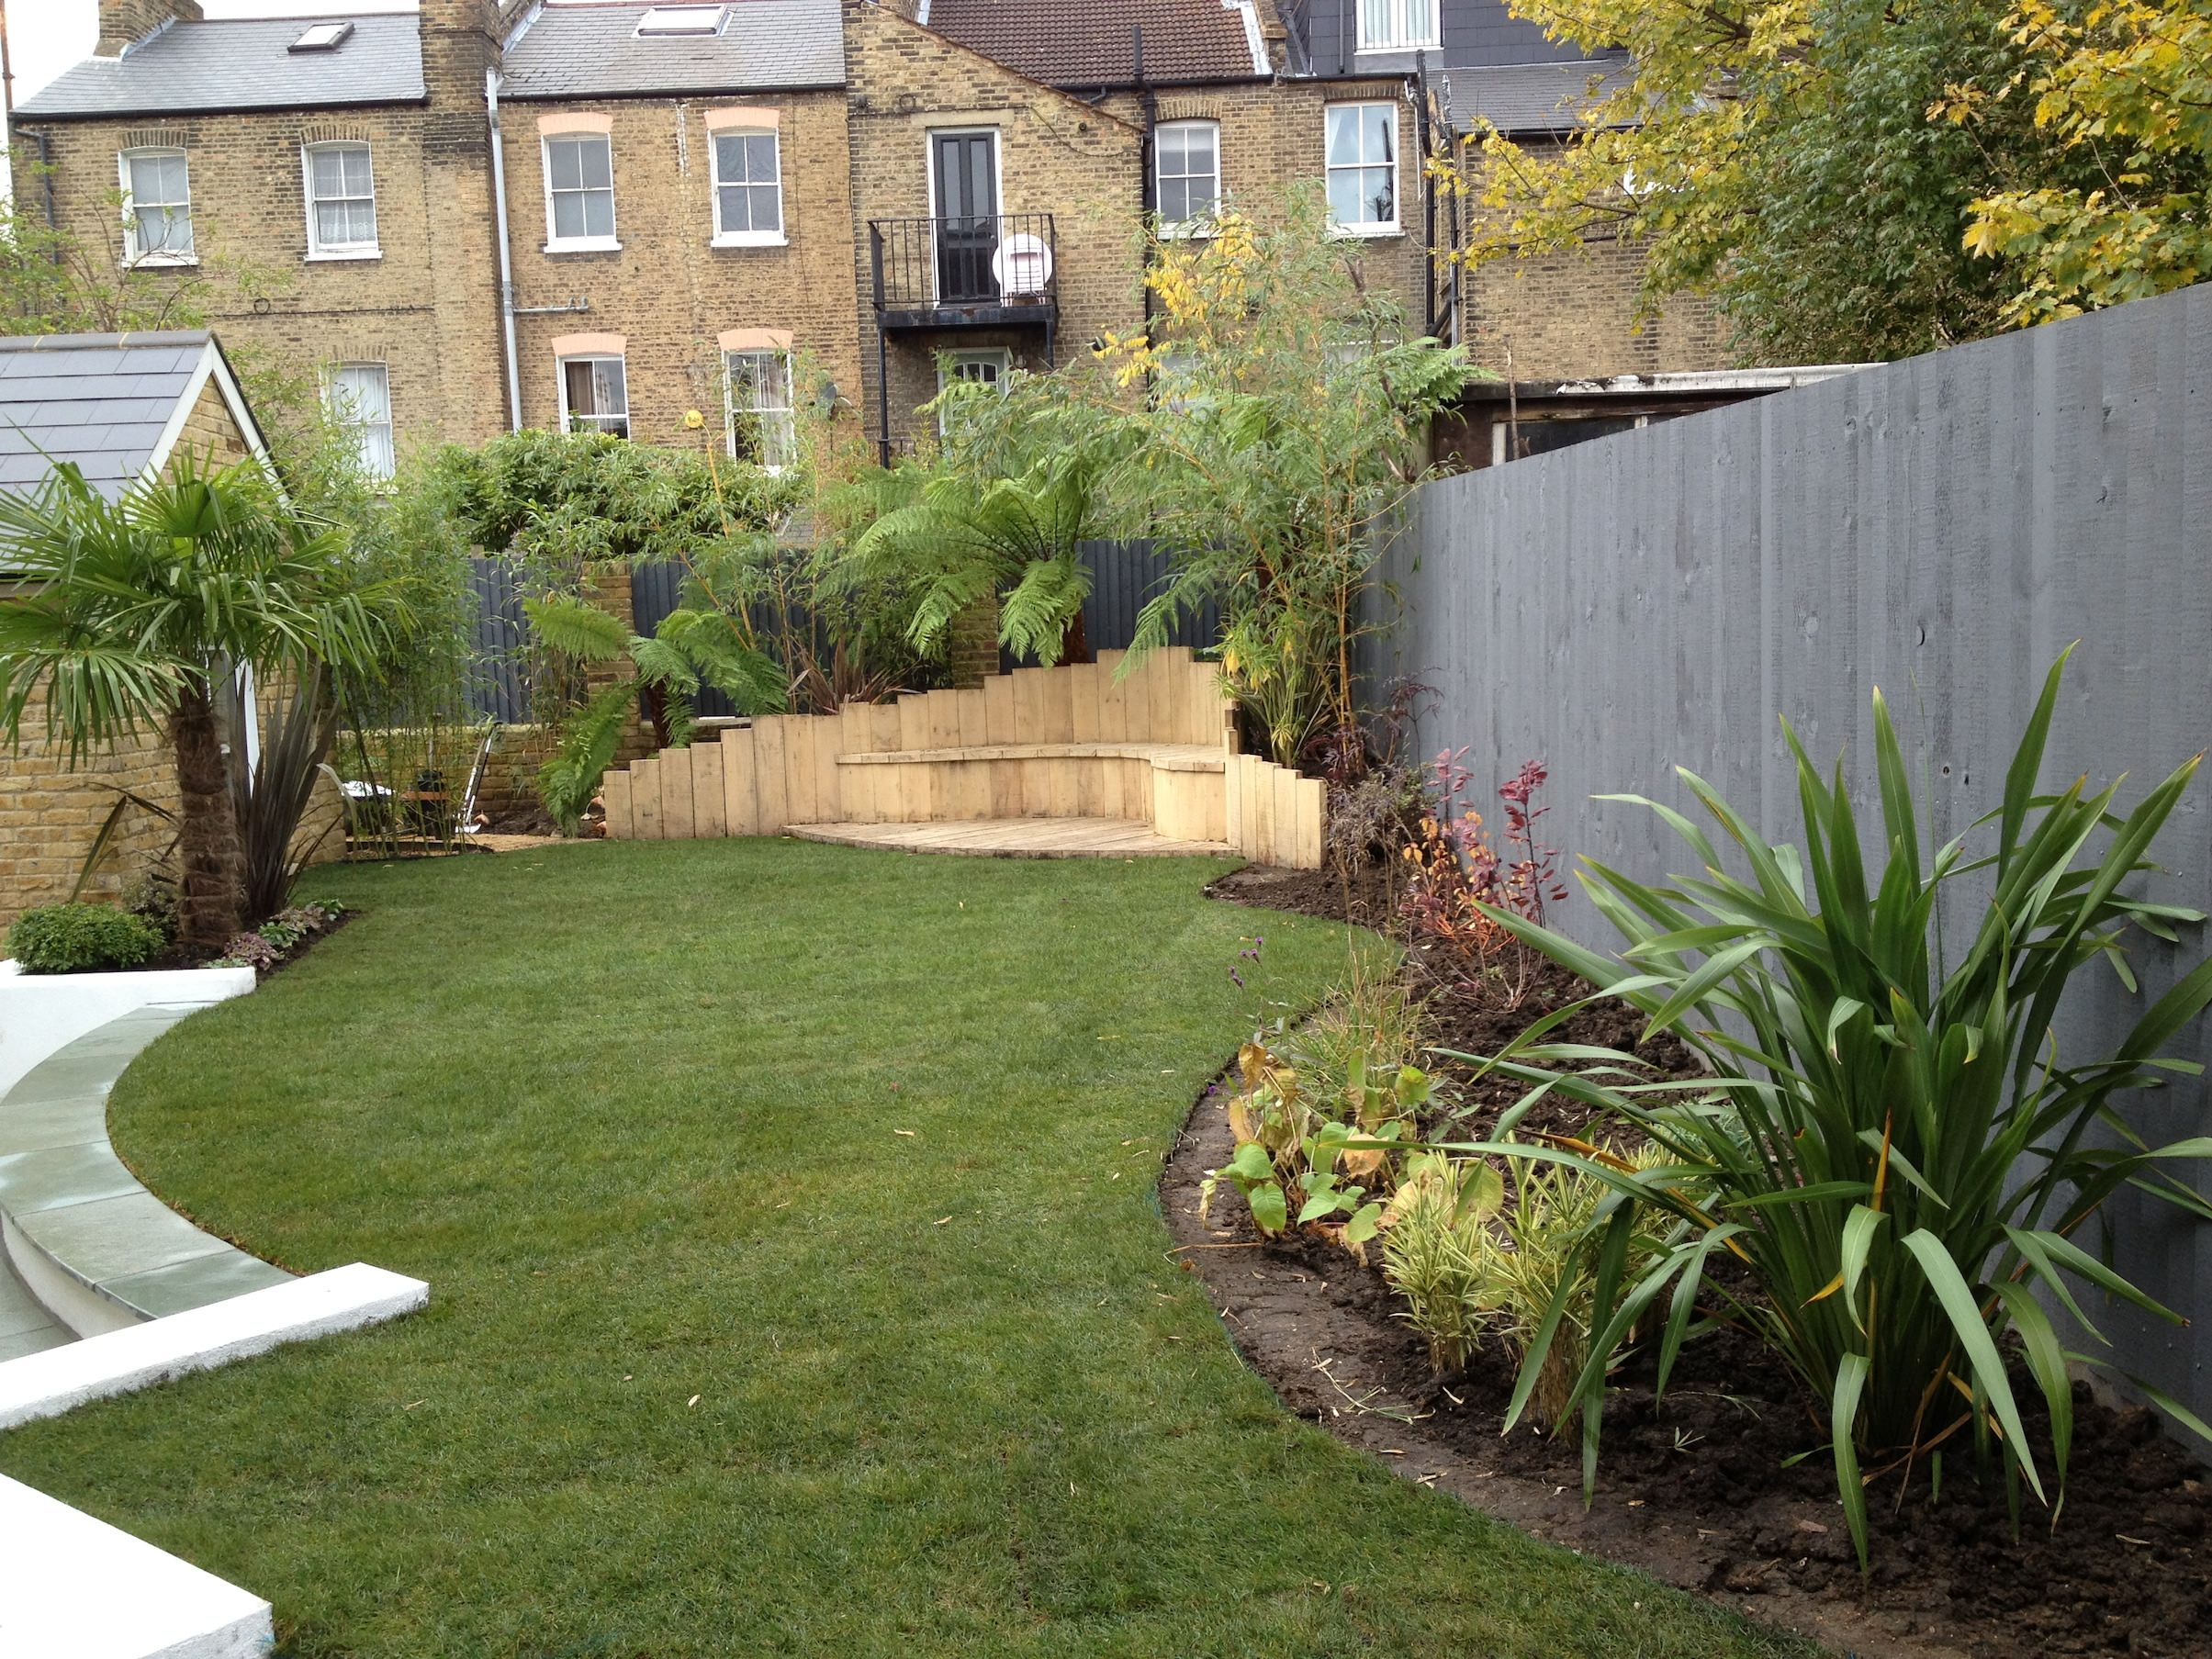 Low maintenance garden designs garden club london for Low maintenance lawn design